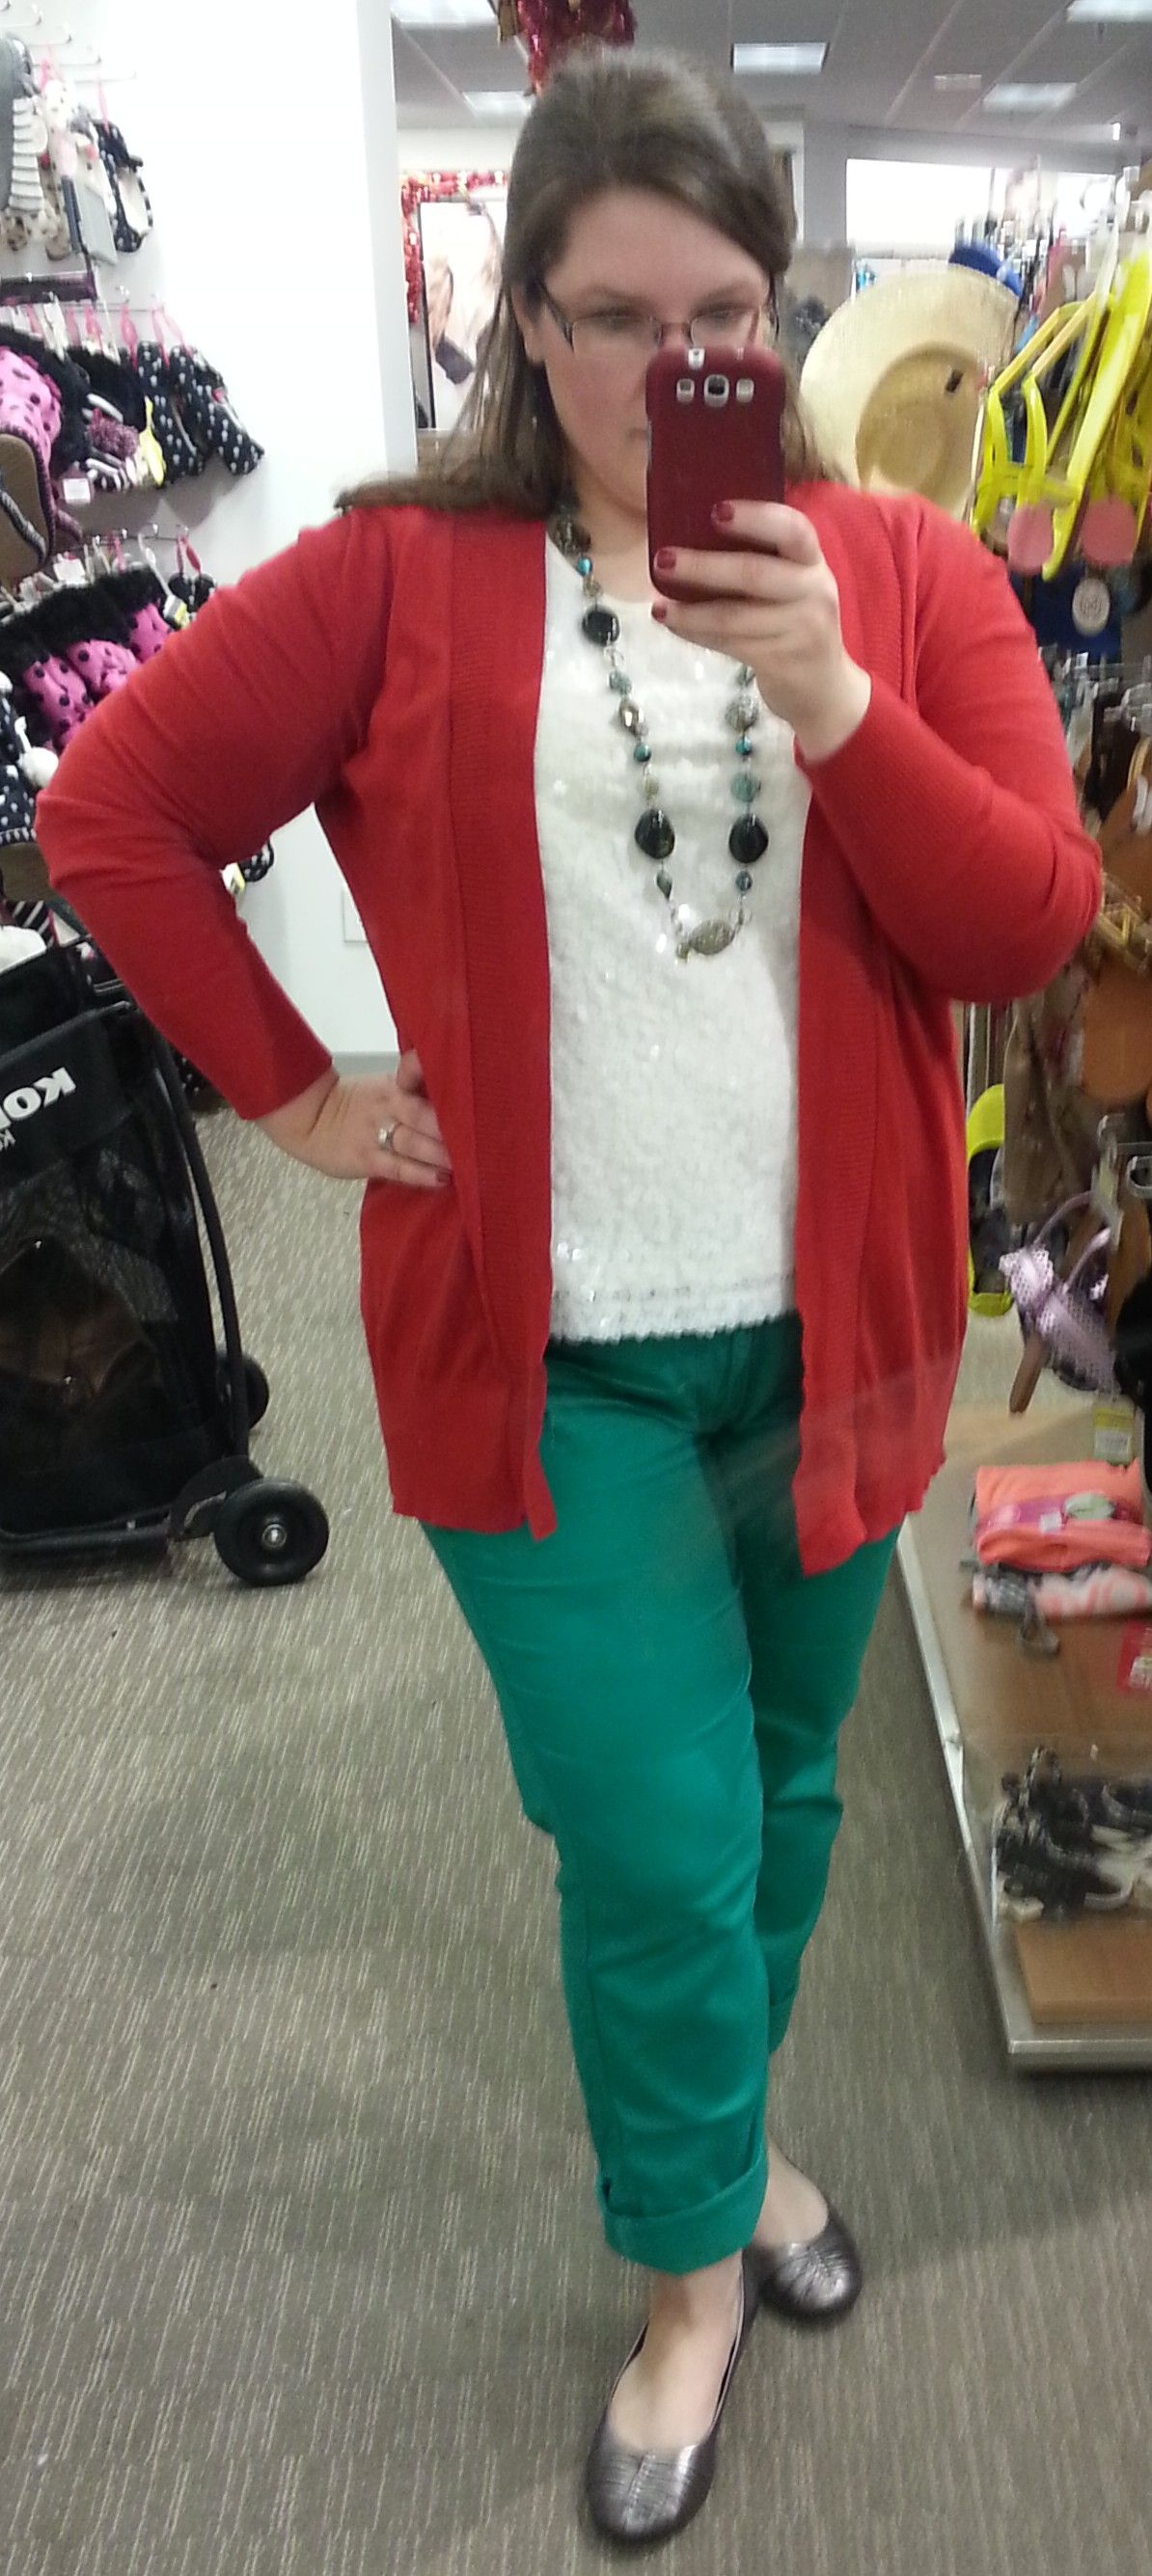 c2c51975e6a11 Lane Bryant red cardigan  white sequin tank  green skinnies  Naturalizer  pewter ballet flats  long green necklace  365daywardrobeplus  winteroutfit  ...